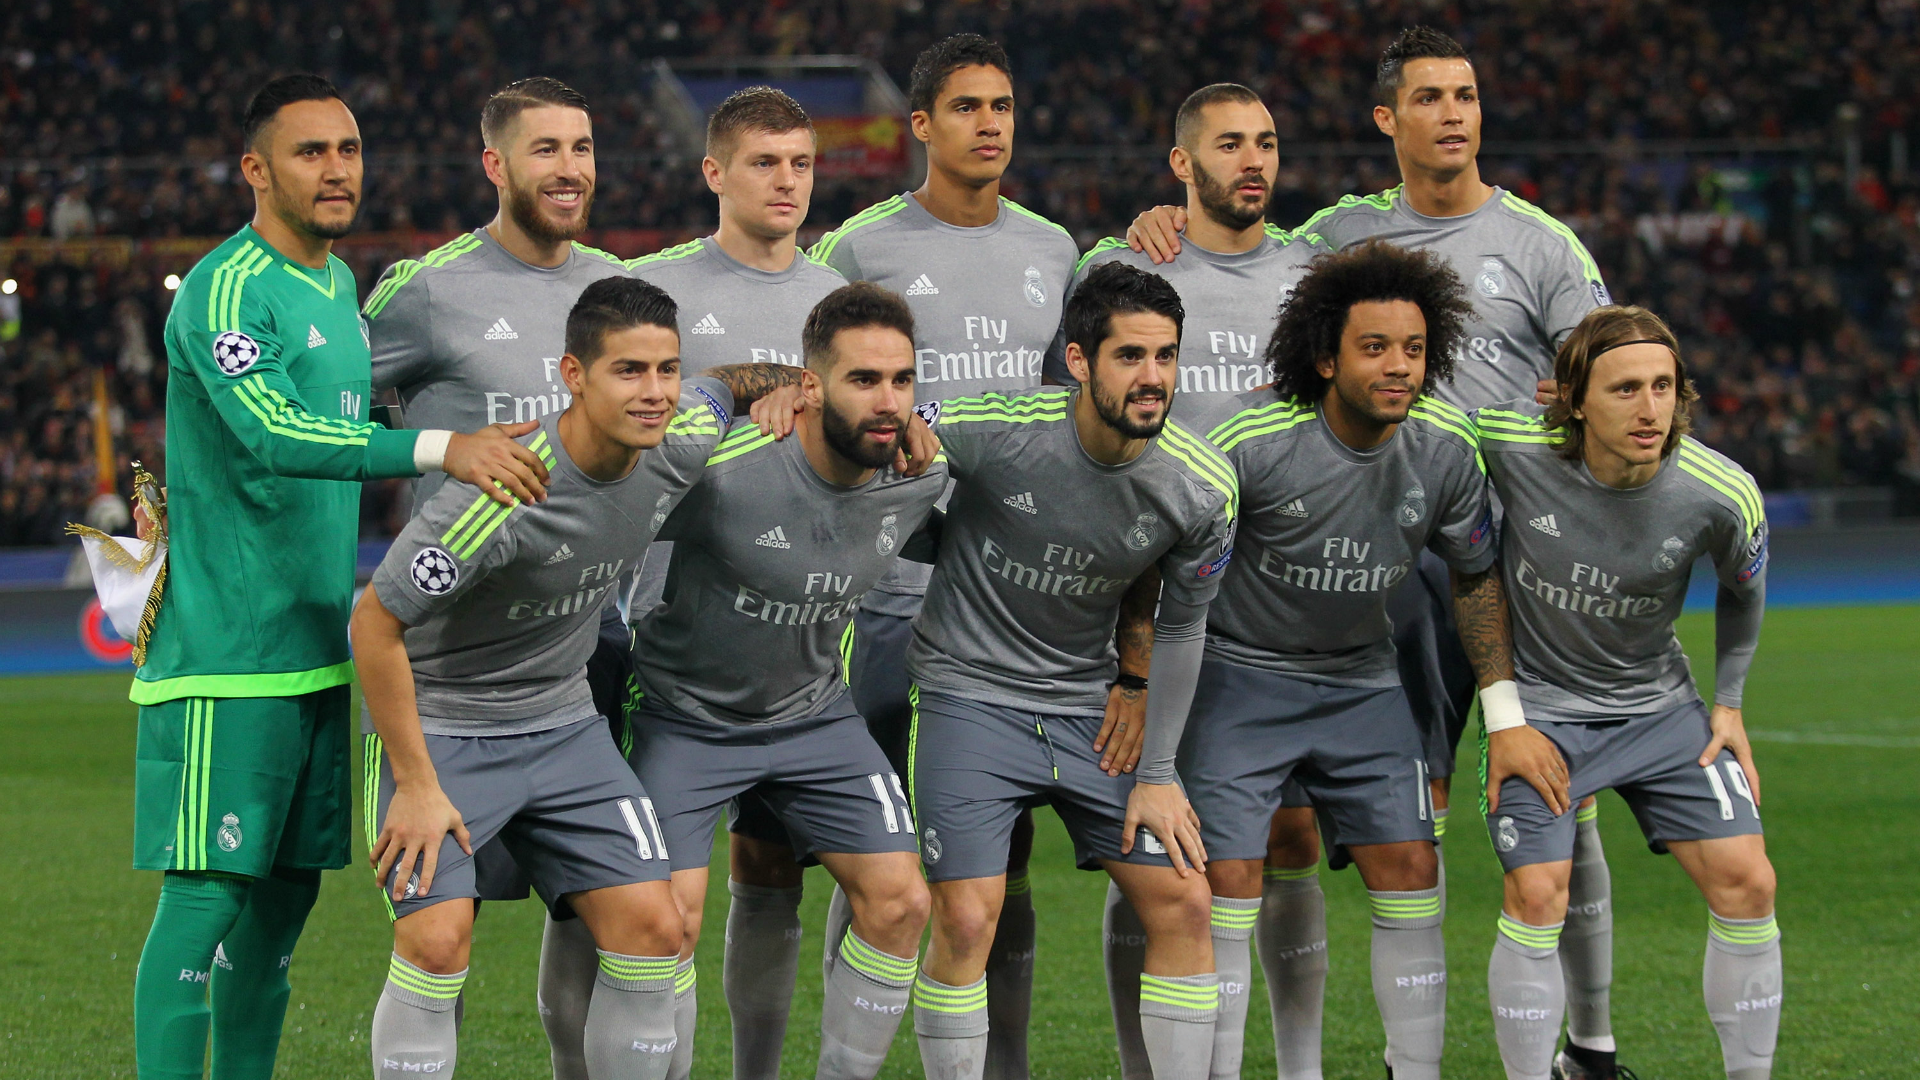 Real Madrid lineup against Roma in Champions League 2015-16